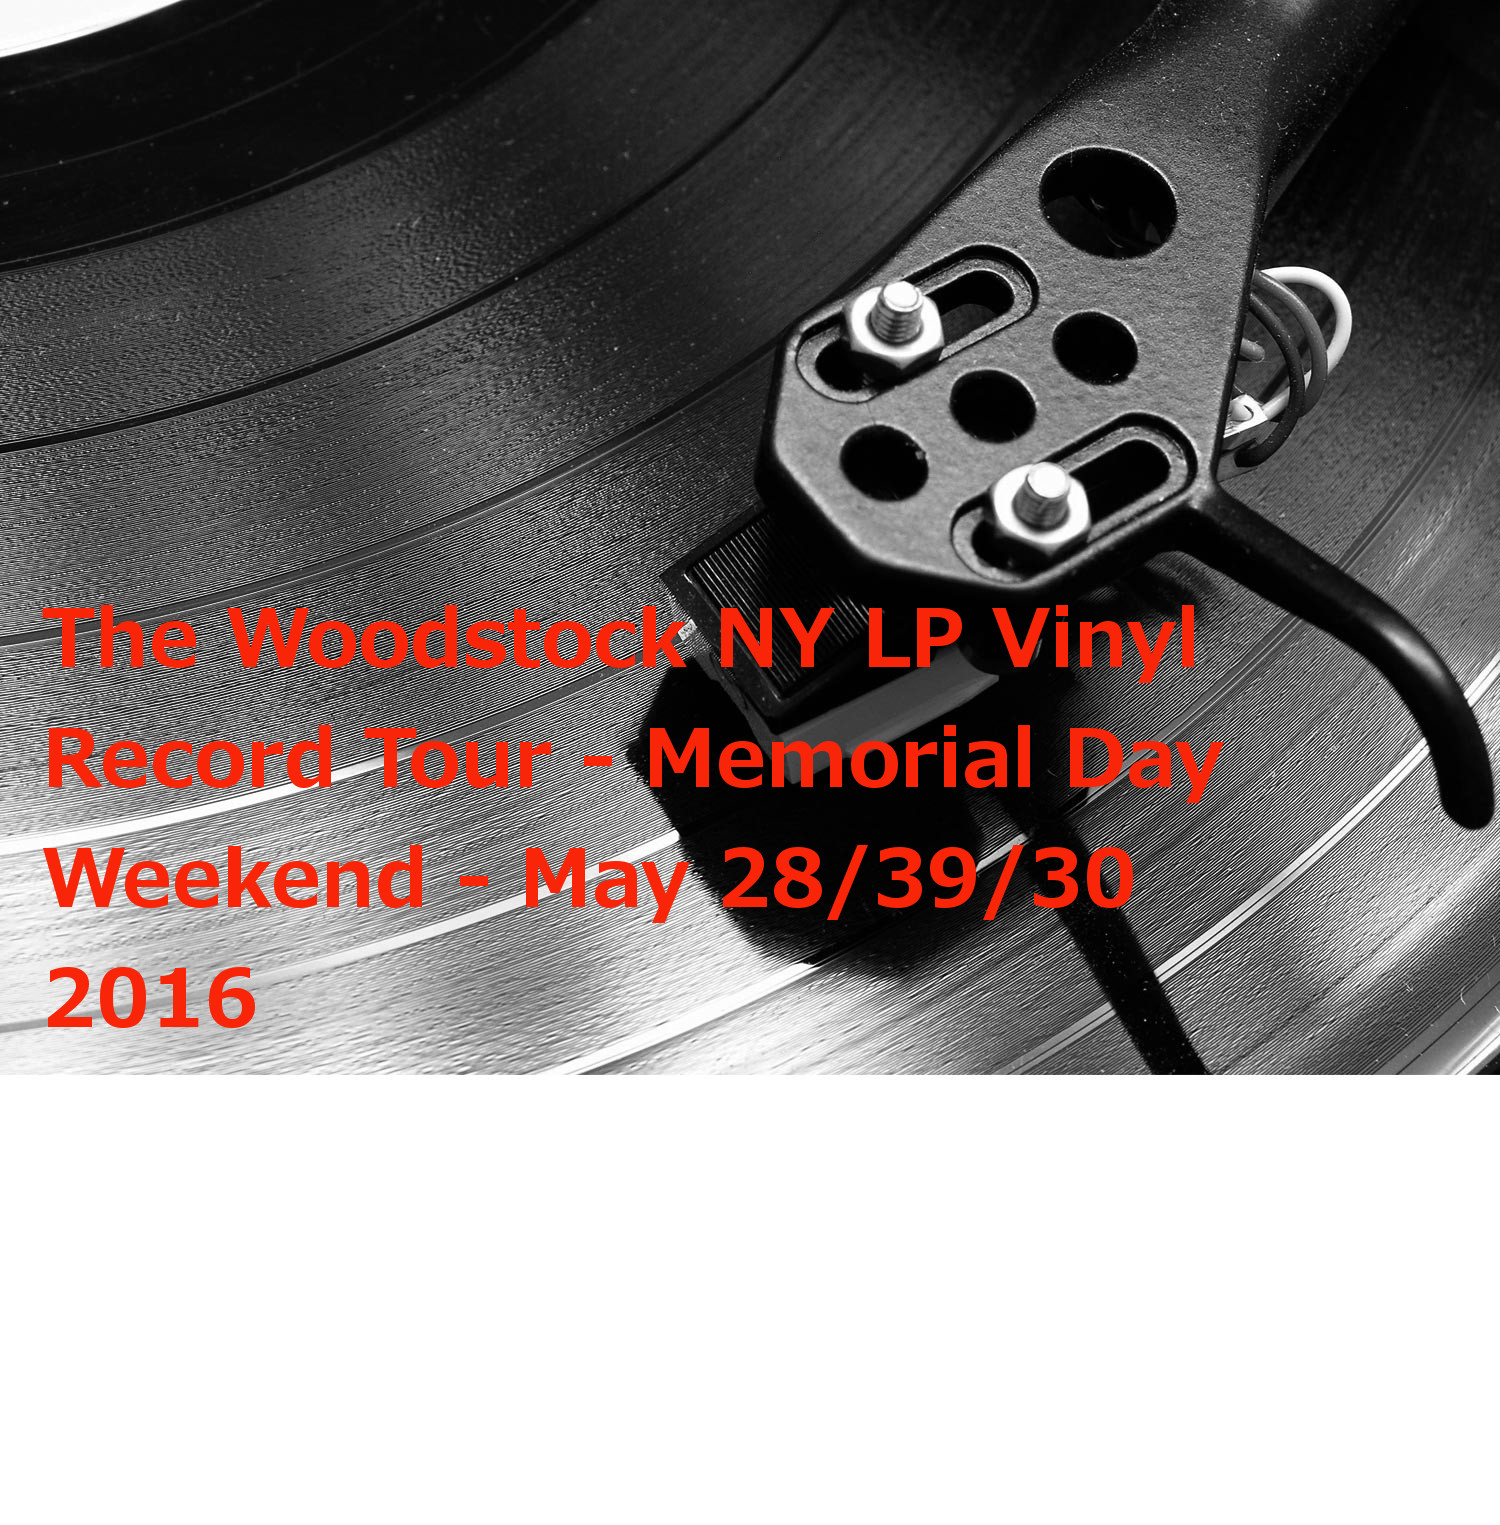 Woodstock NY LP Vinyl Record Tour – Memorial Day Weekend – May 28/29/30, 2016